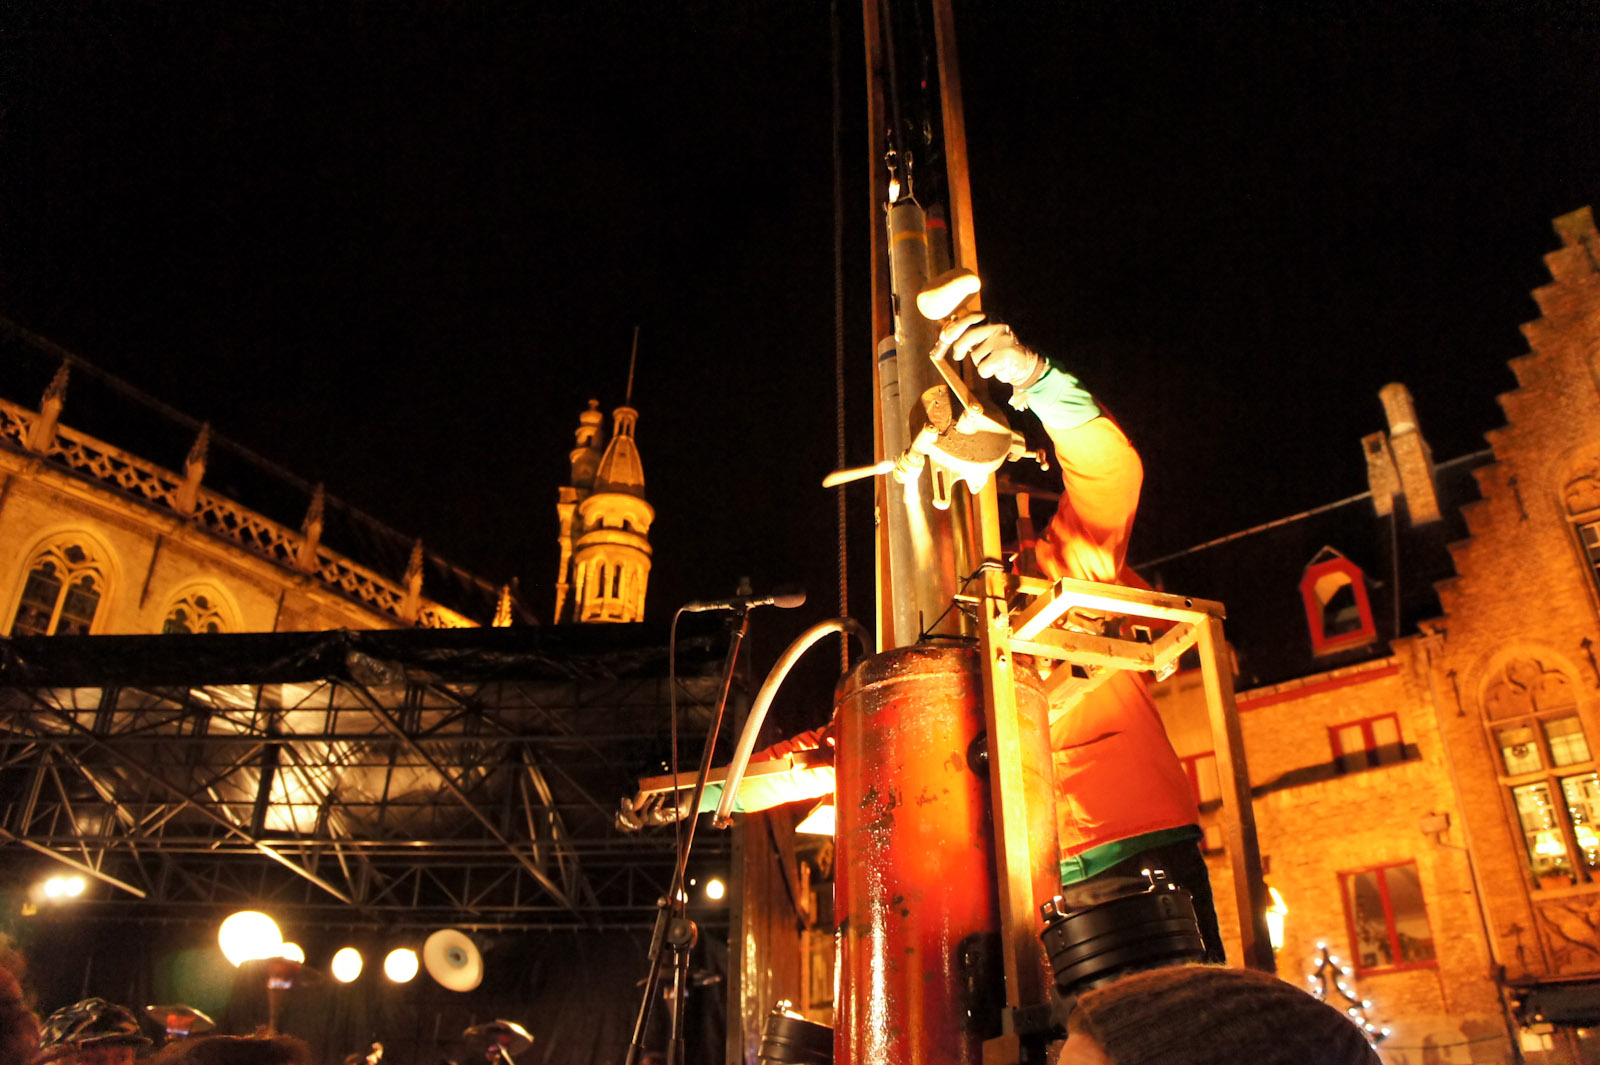 Symphonie Mecanique performs in Brugge on the 2nd of January 2011